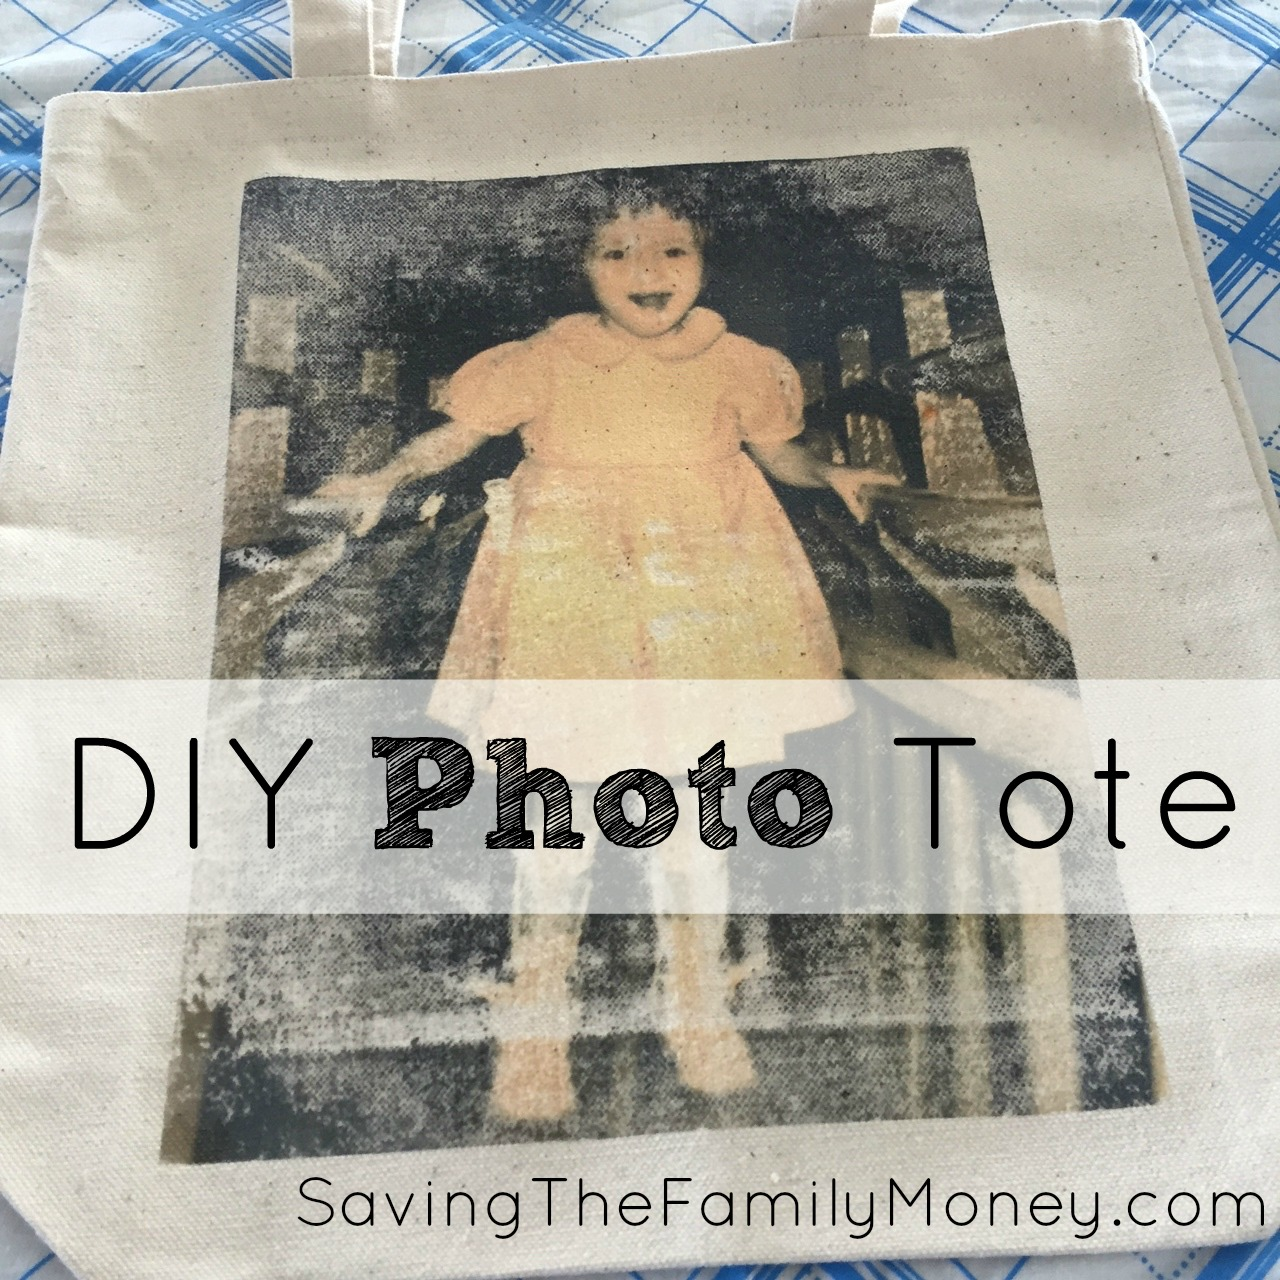 DIY Photo Tote